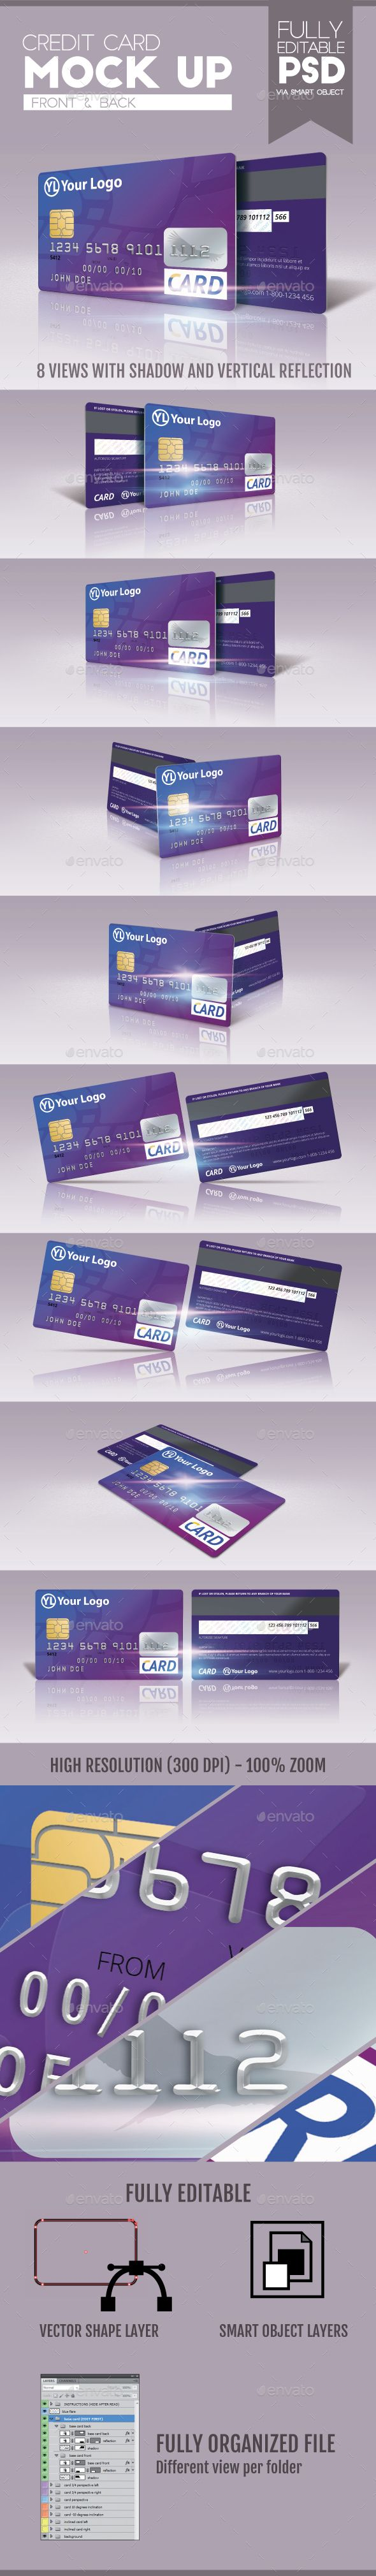 Credit Card Mock-Up #design Download: http://graphicriver.net/item/credit-card-mock-up-v2/14105239?ref=ksioks